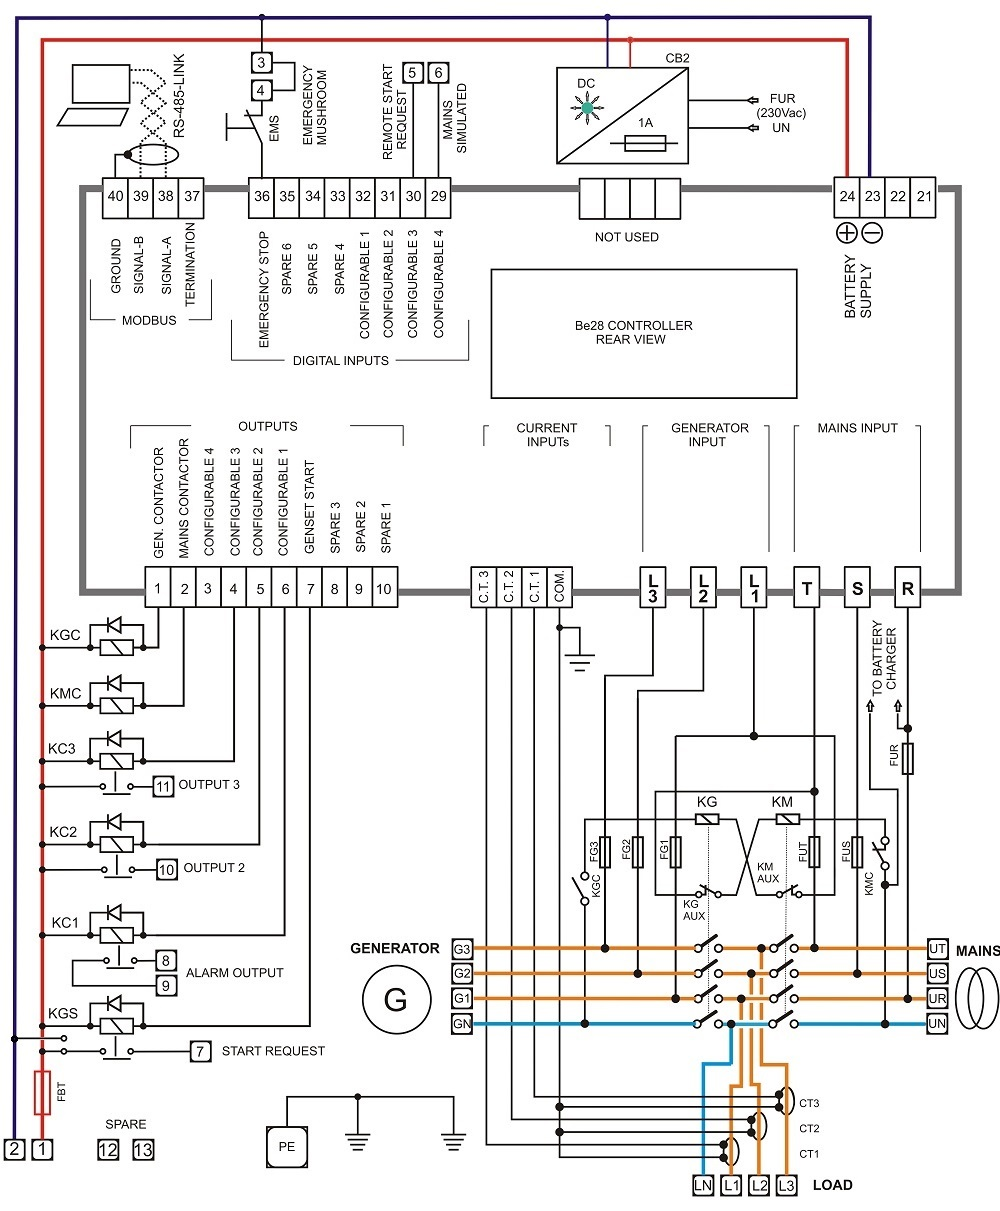 Rover Fuse Box Diagram Free Download Wiring Citroen C5 Range L322 Diagrams Also With 1996 Ford F 150 Additionally House